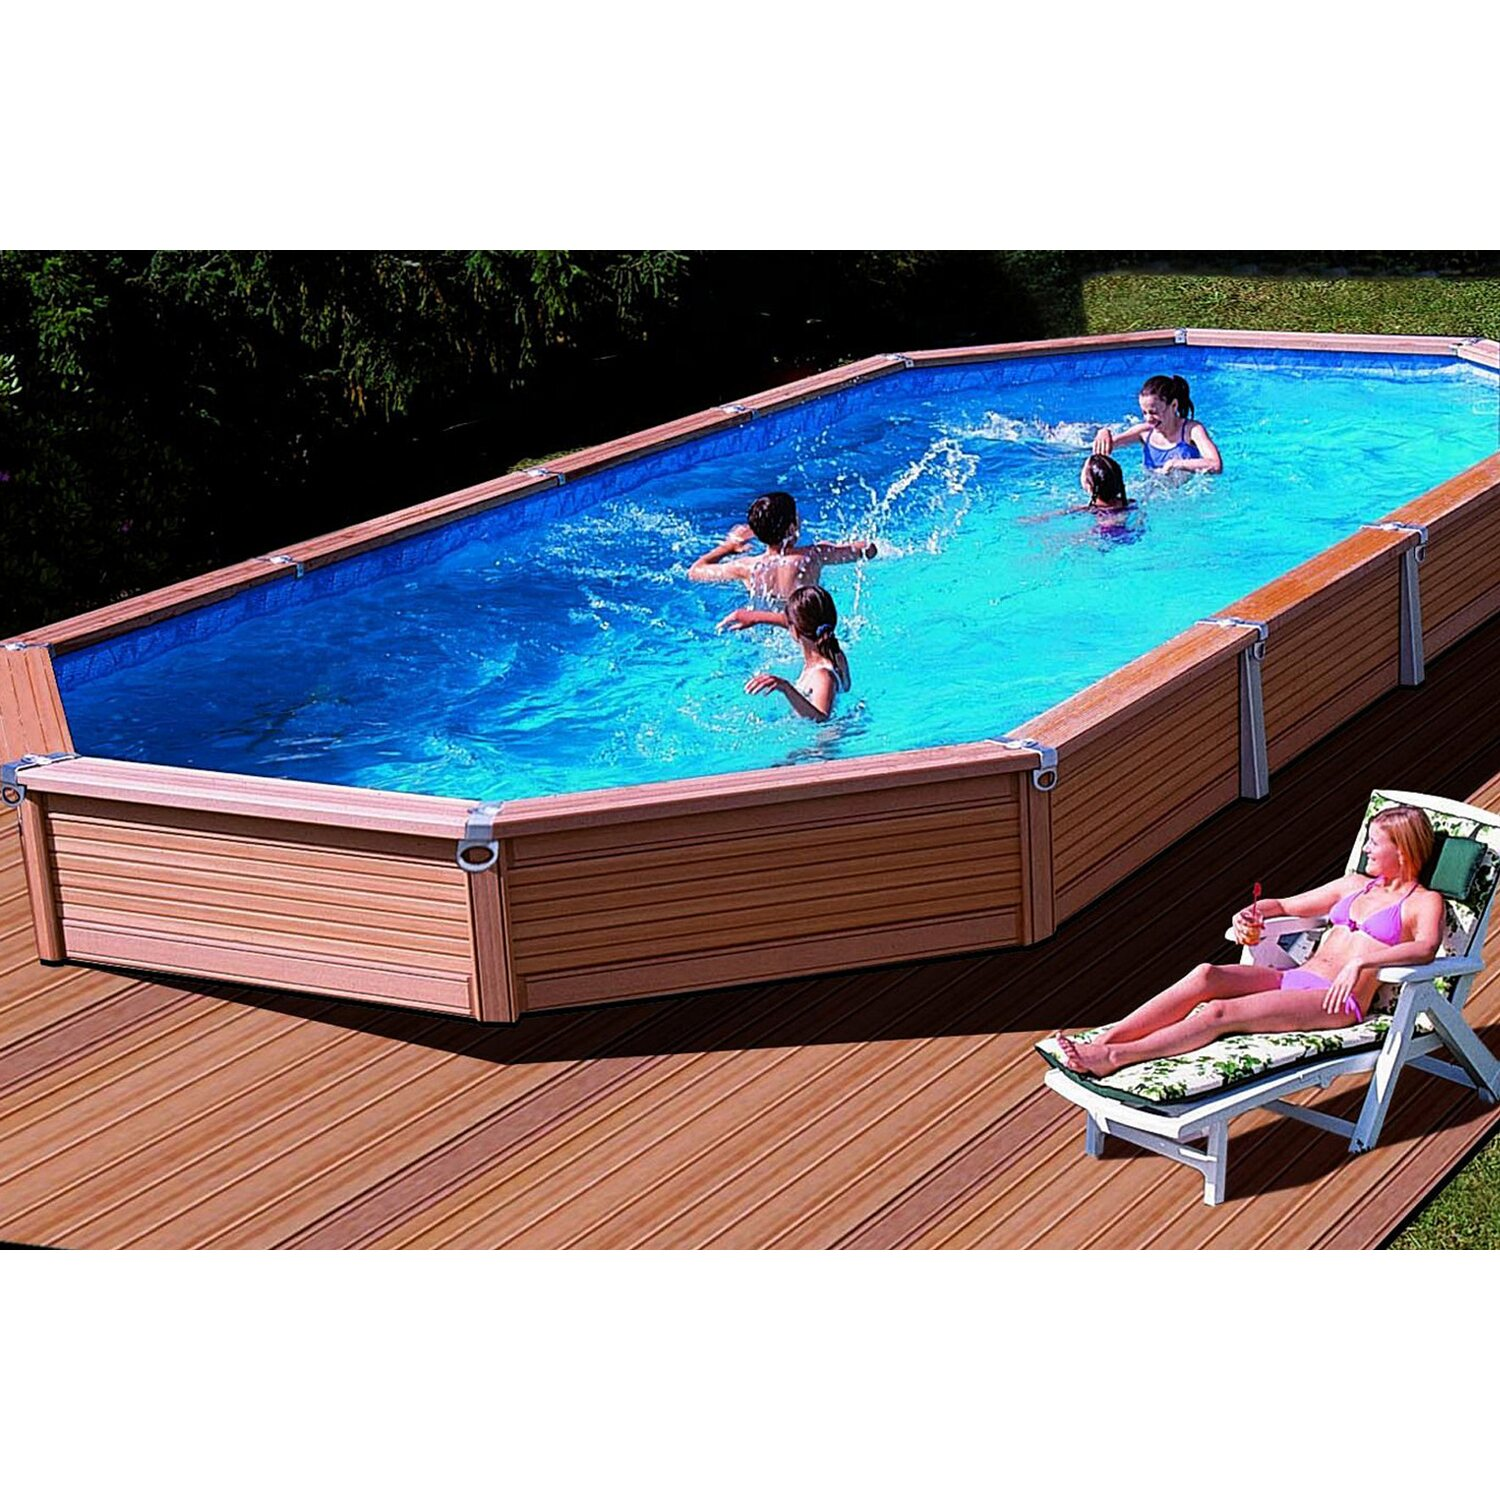 summer fun pool set azteck aufstellbecken ovalform 560 cm x 400 cm x 140 cm kaufen bei obi. Black Bedroom Furniture Sets. Home Design Ideas